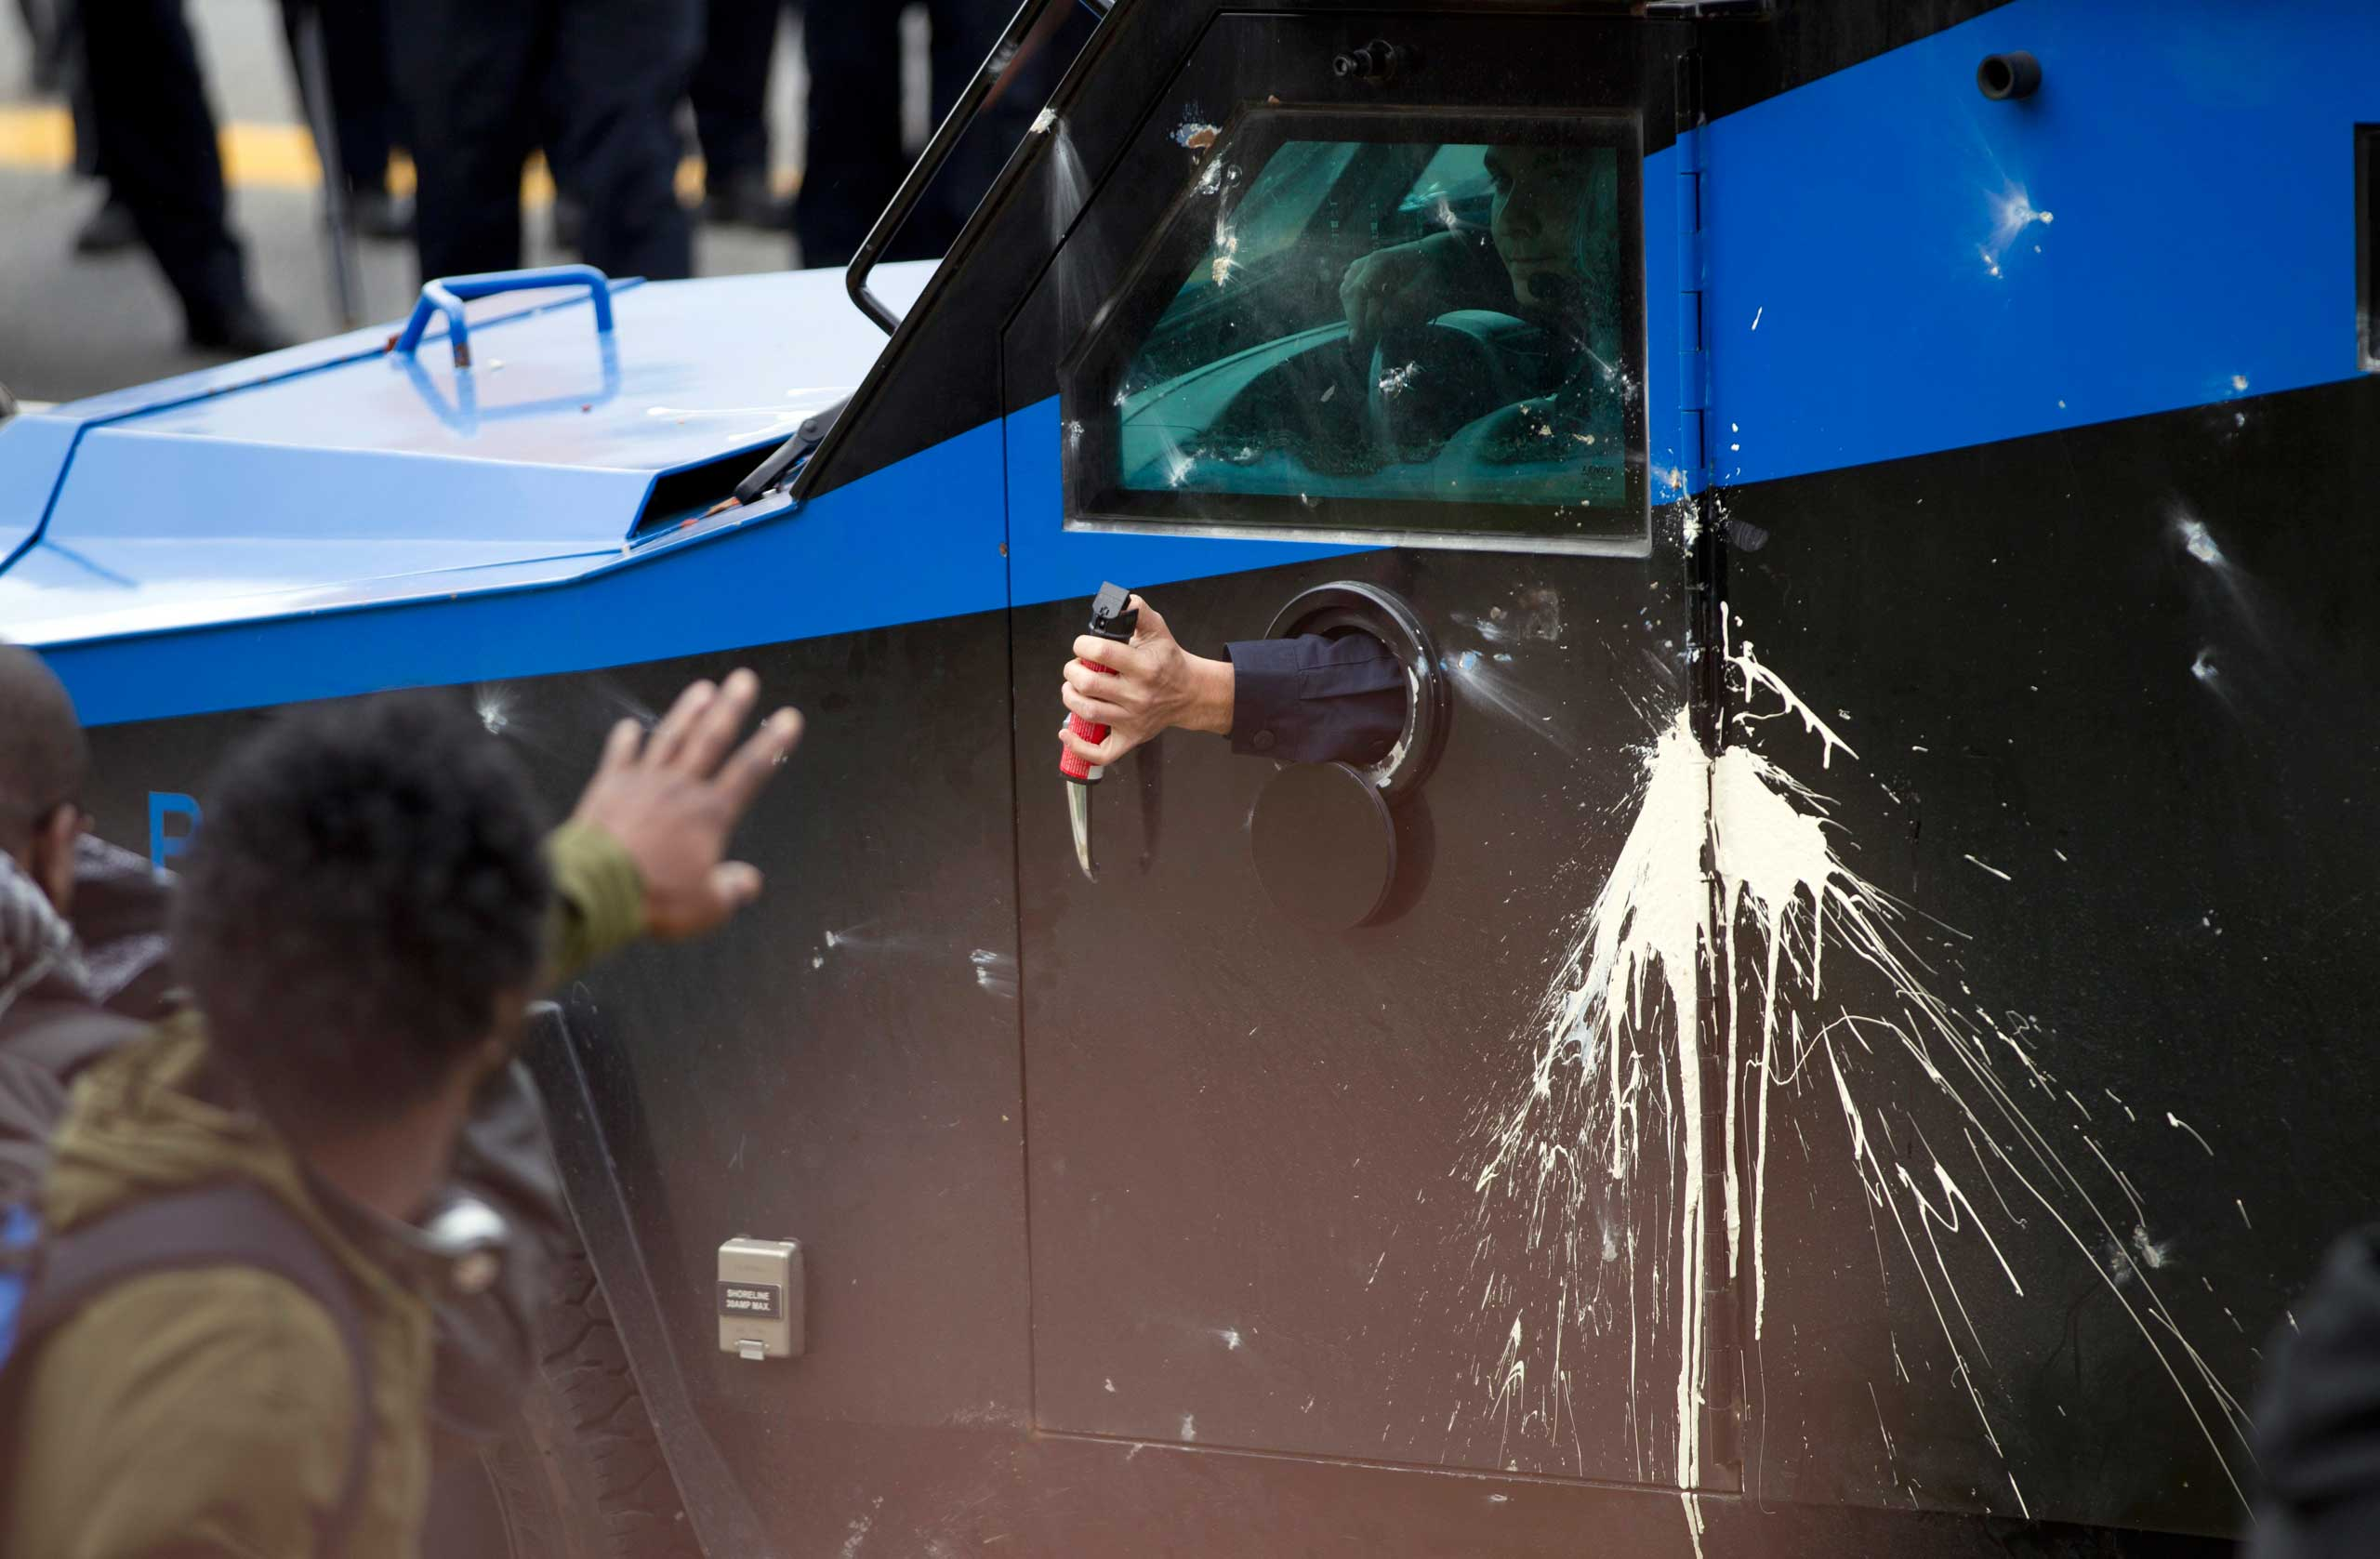 Police officers use pepper spray against demonstrators after the funeral of Freddie Gray in Baltimore on April 27, 2015.